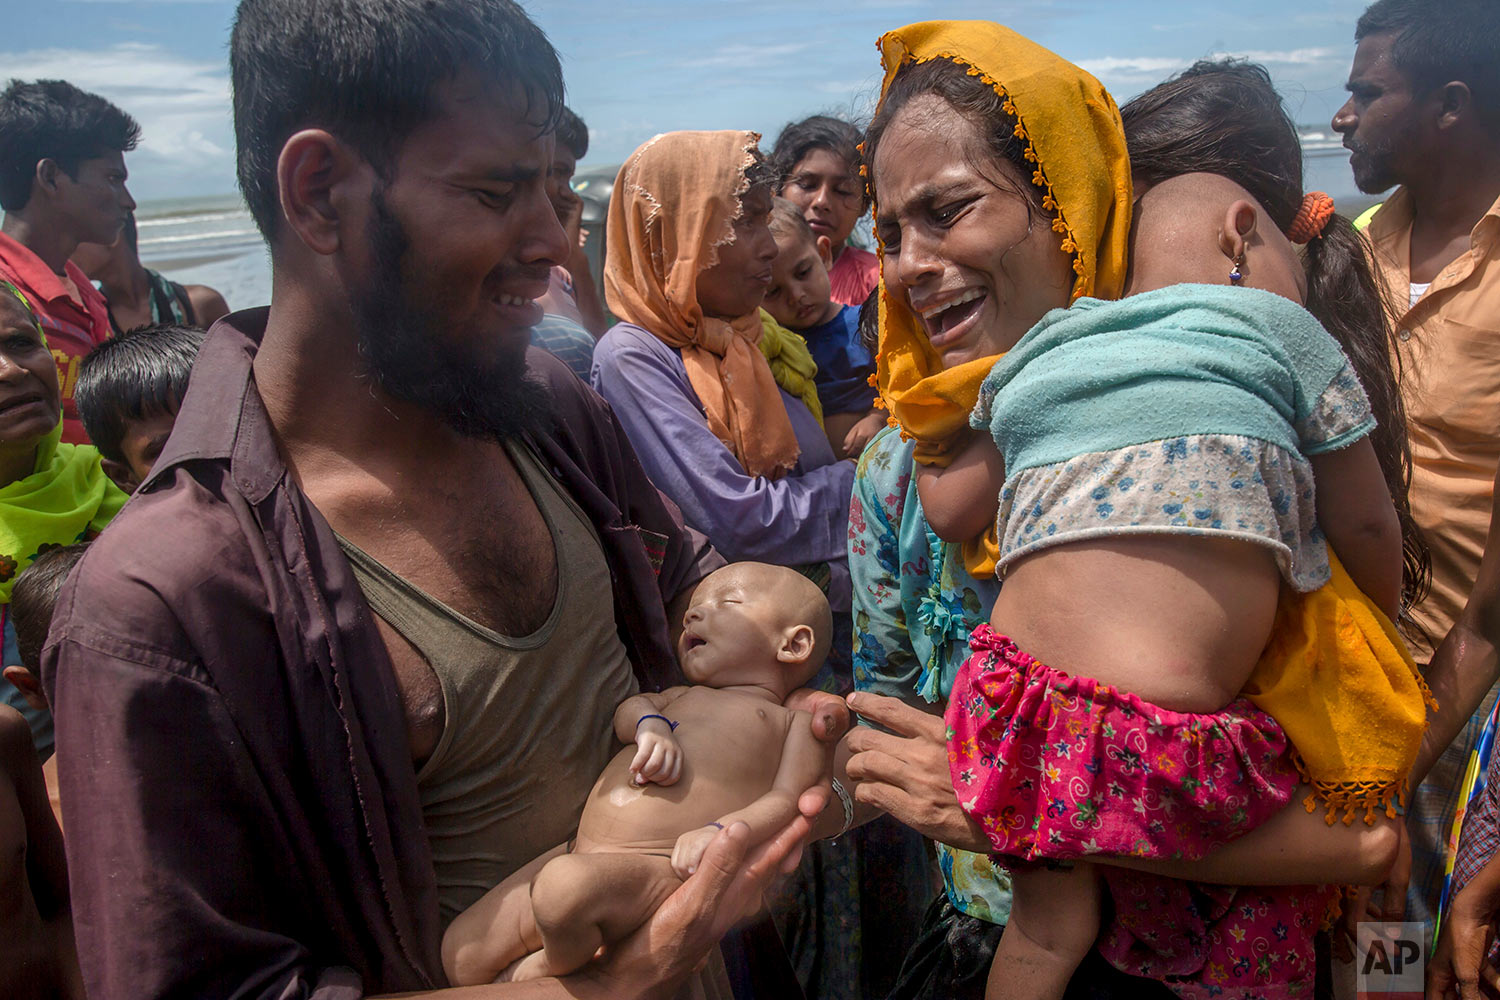 A Rohingya Muslim man Naseer Ud Din holds his infant son Abdul Masood, who drowned when the boat they were traveling in capsized just before reaching the shore, as his wife Hanida Begum cries upon reaching the Bay of Bengal shore in Shah Porir Dwip, Bangladesh, Thursday, Sept. 14, 2017. Nearly three weeks into a mass exodus of Rohingya fleeing violence in Myanmar, thousands were still flooding across the border Thursday in search of help and safety in teeming refugee settlements in Bangladesh. (AP Photo/Dar Yasin)